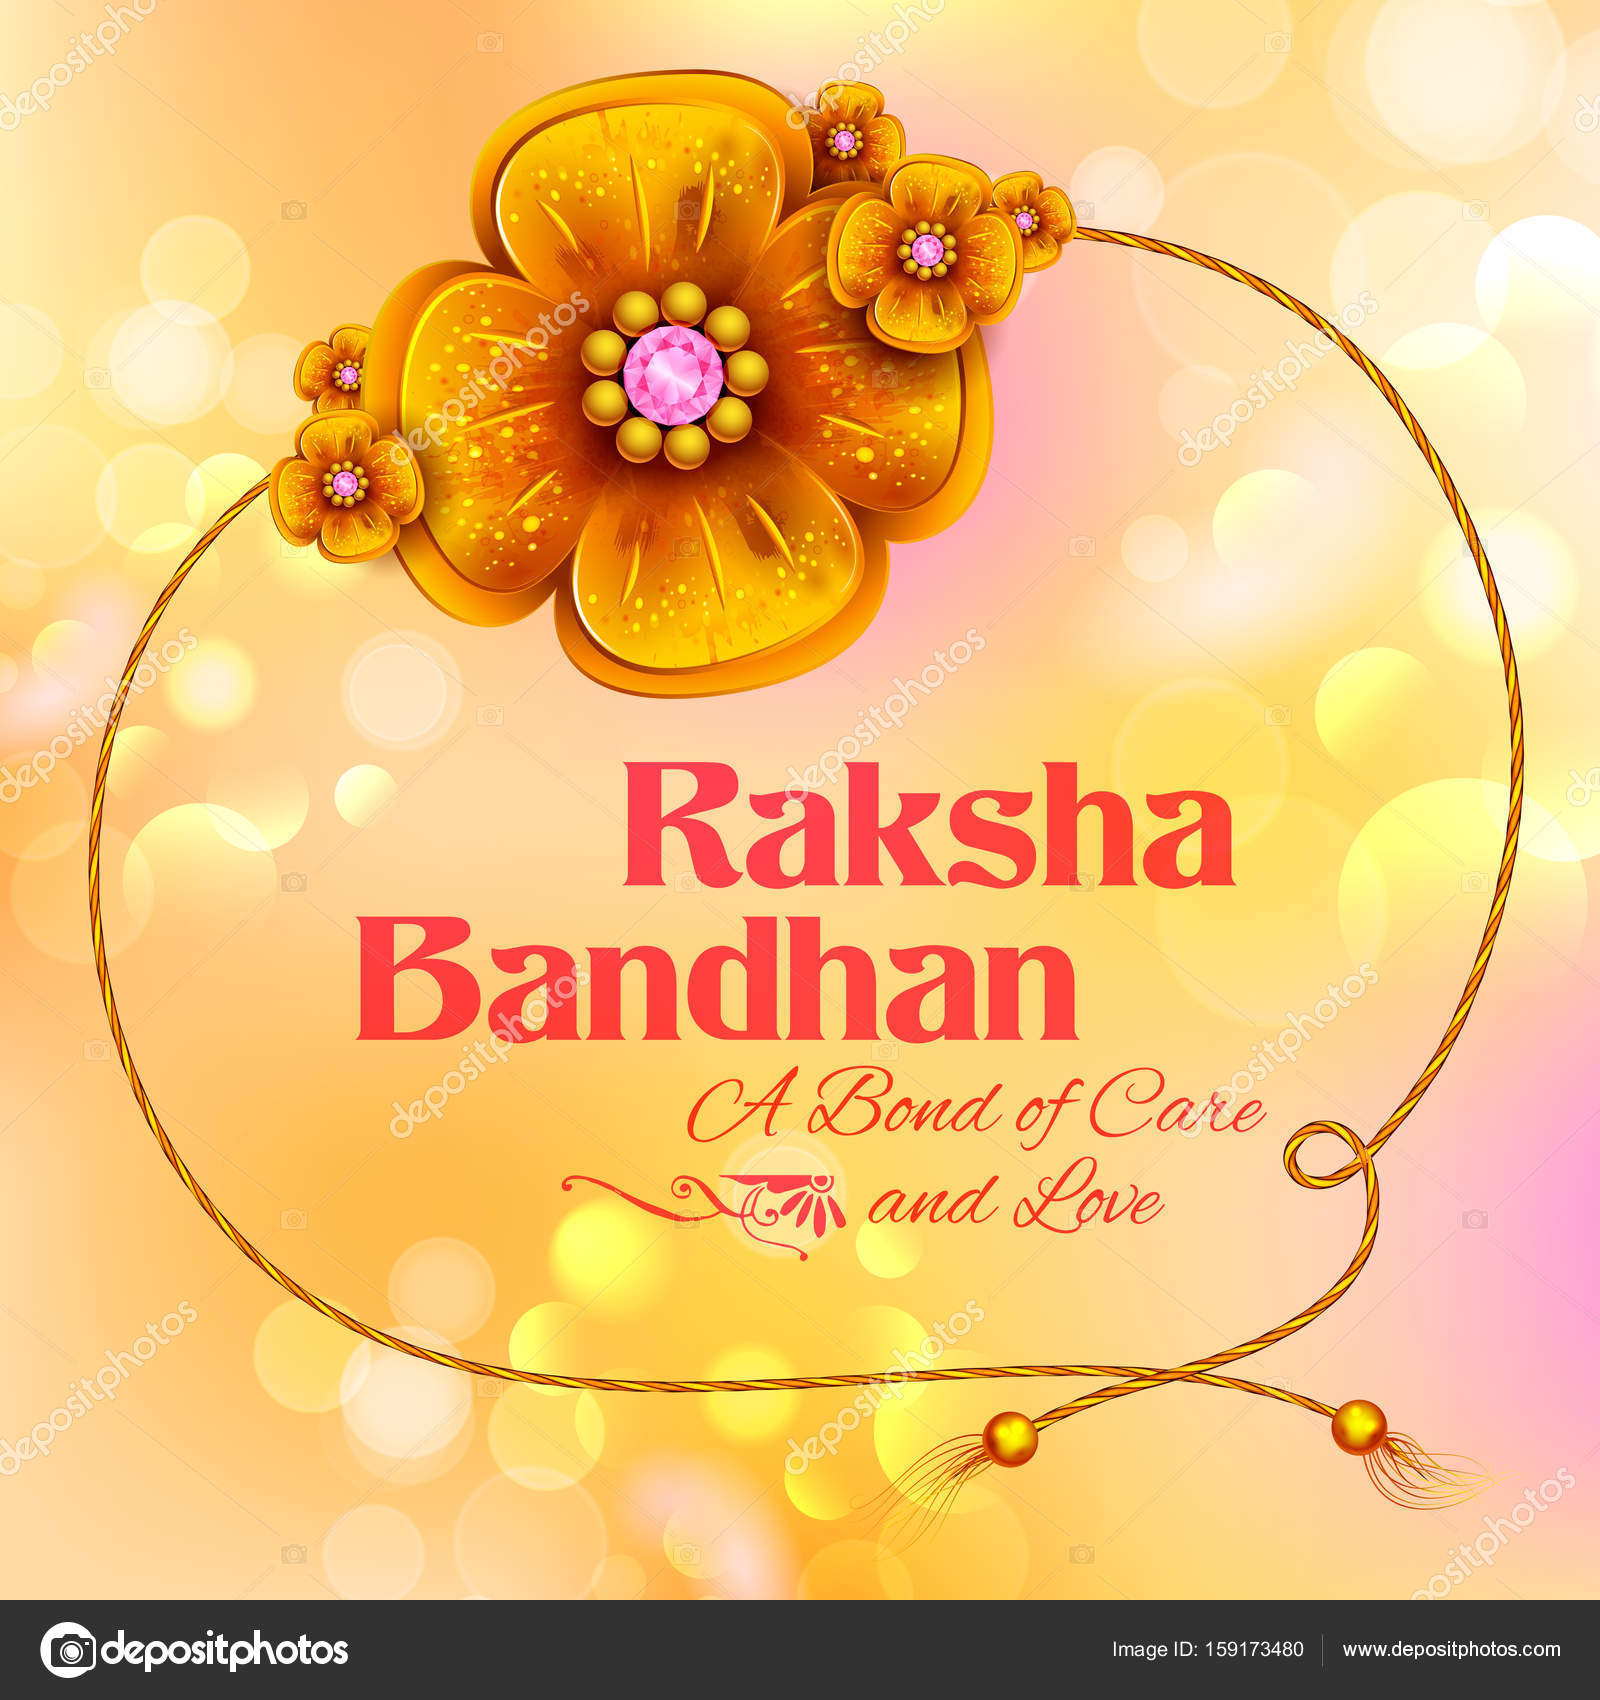 Greeting card with decorative rakhi for raksha bandhan background illustration of greeting card with decorative rakhi for raksha bandhan indian festival for brother and sister bonding celebration vector by vectomart kristyandbryce Image collections